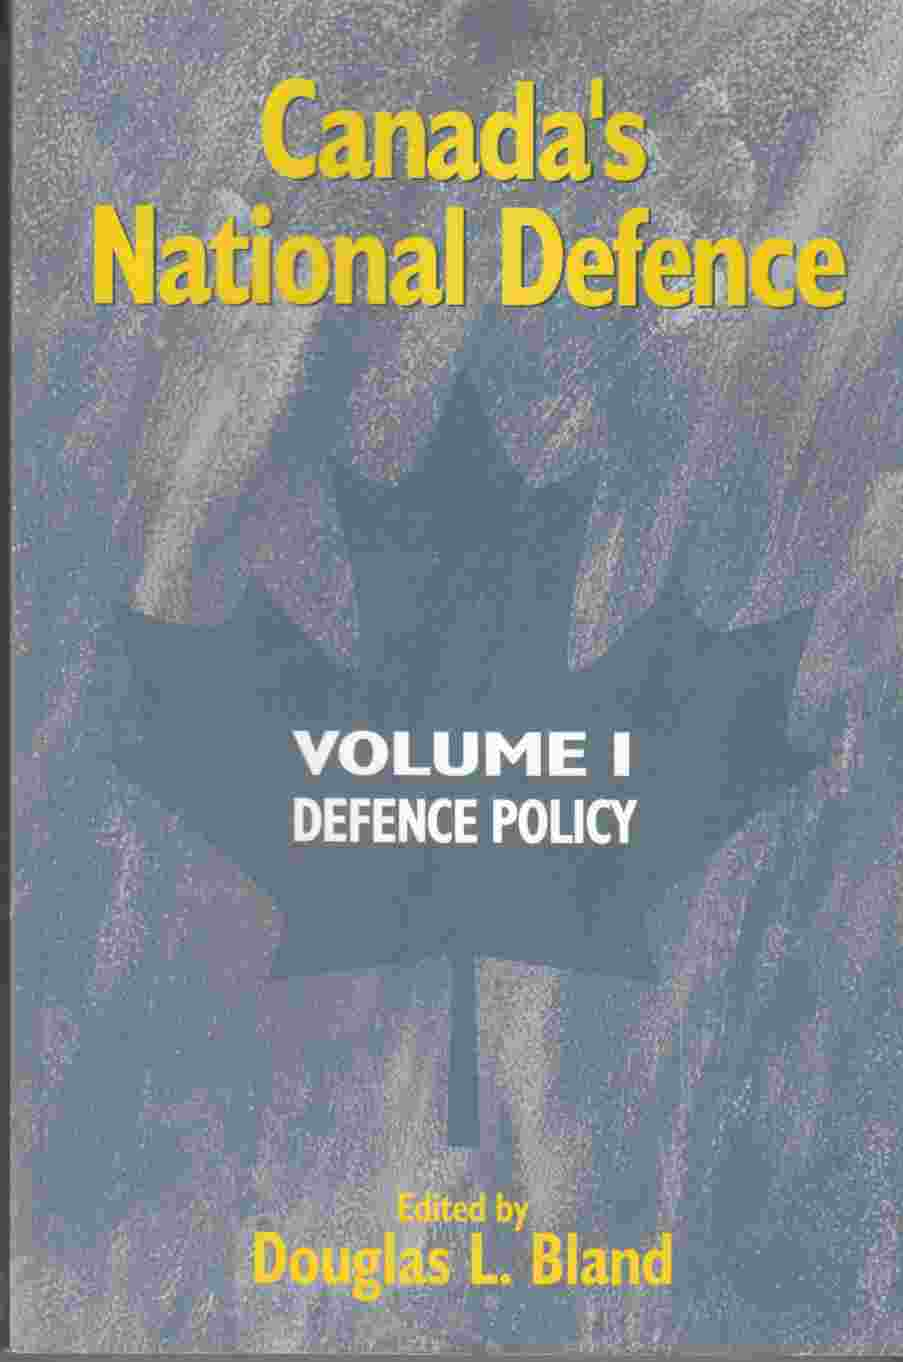 Image for Canada's National Defence Volume I Defence Policy